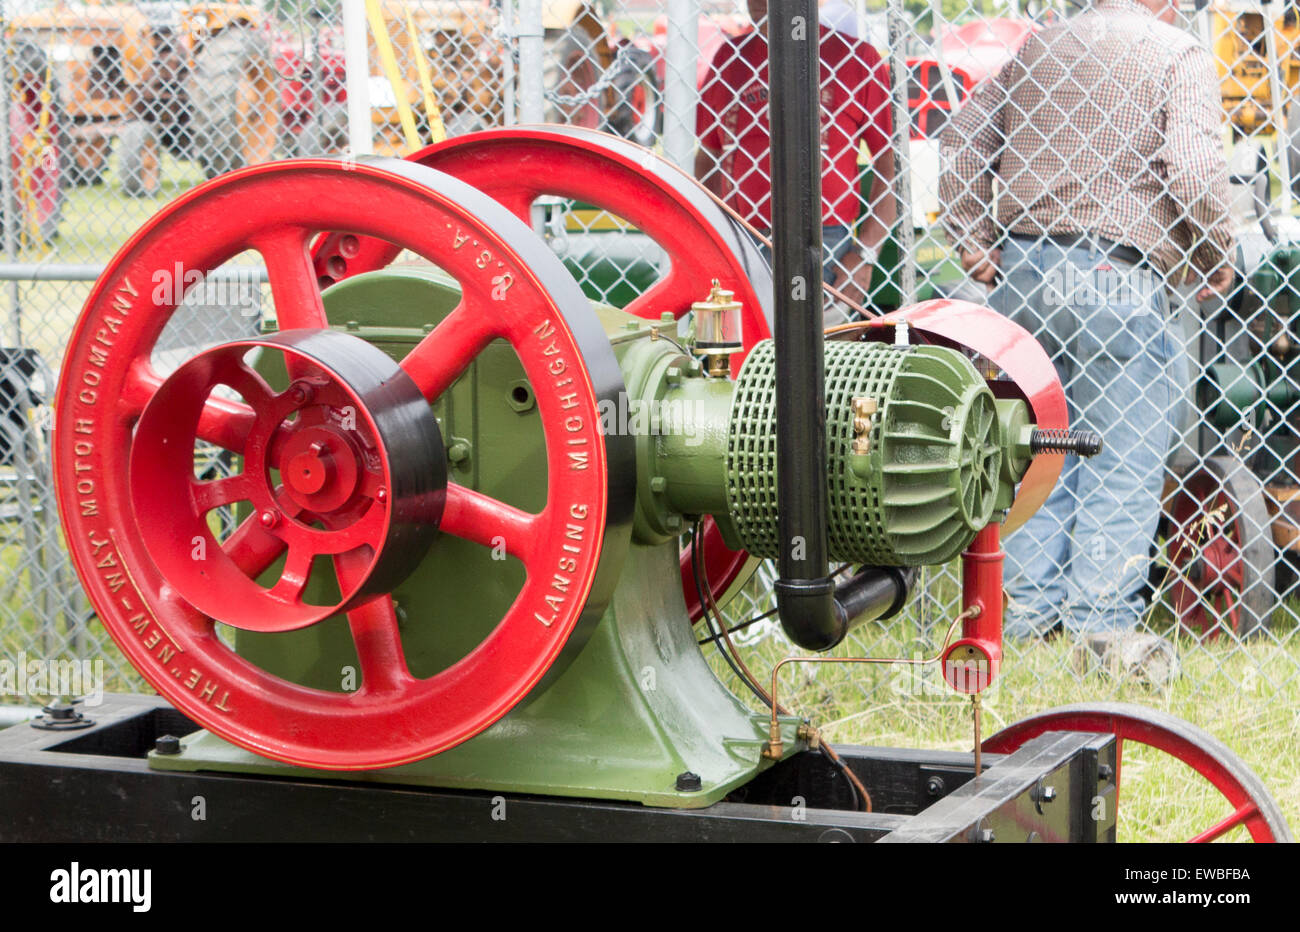 1908 New Way 6.5 hp Engine on display at the Antique Power Show in Lindsay, Ontario - Stock Image